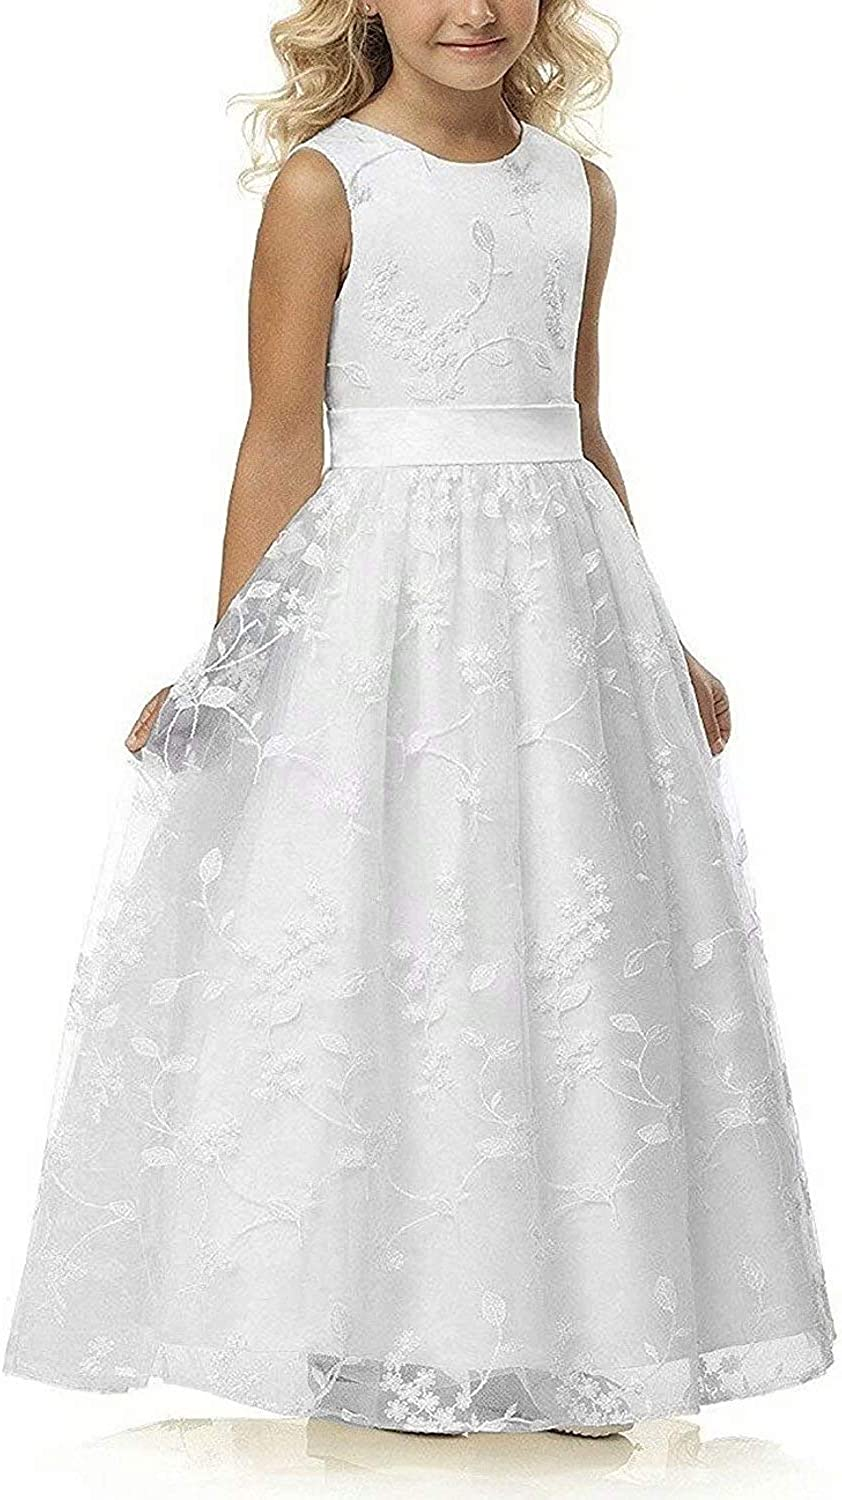 A line Wedding Pageant Lace Flower Girl Dress with Belt 5-15 Year Old